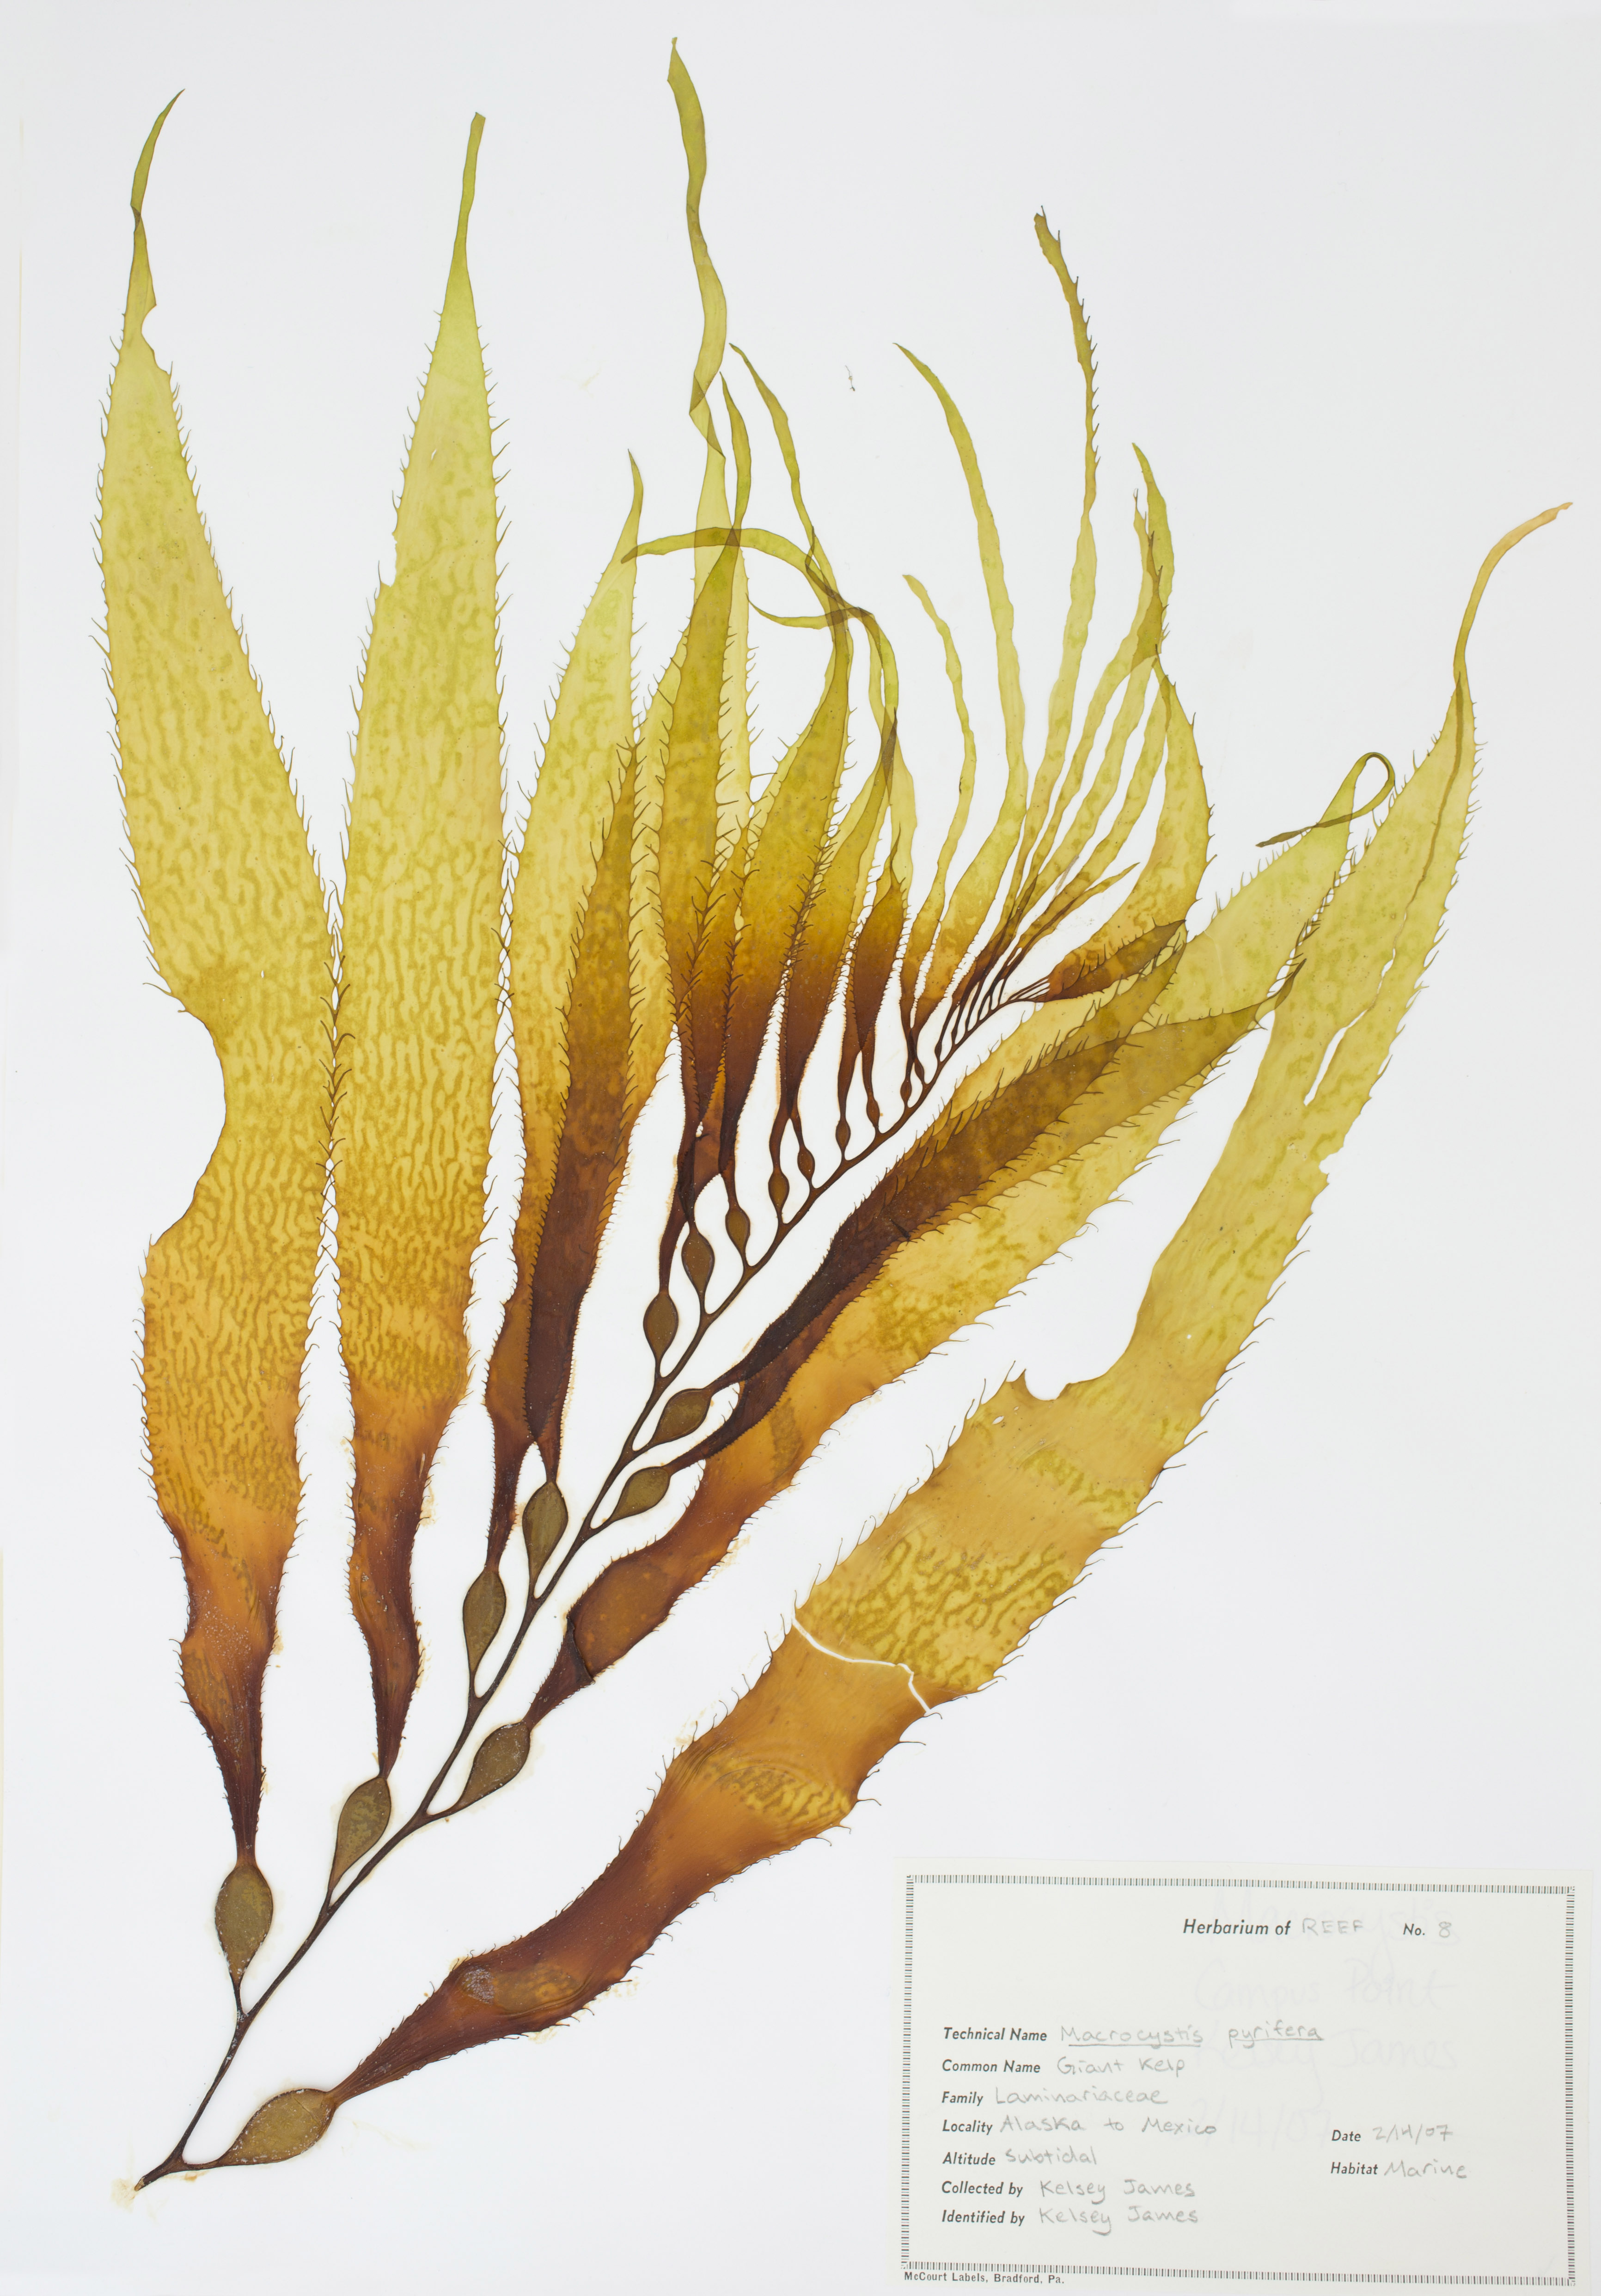 plant research papers View plant tissue culture research papers on academiaedu for free.